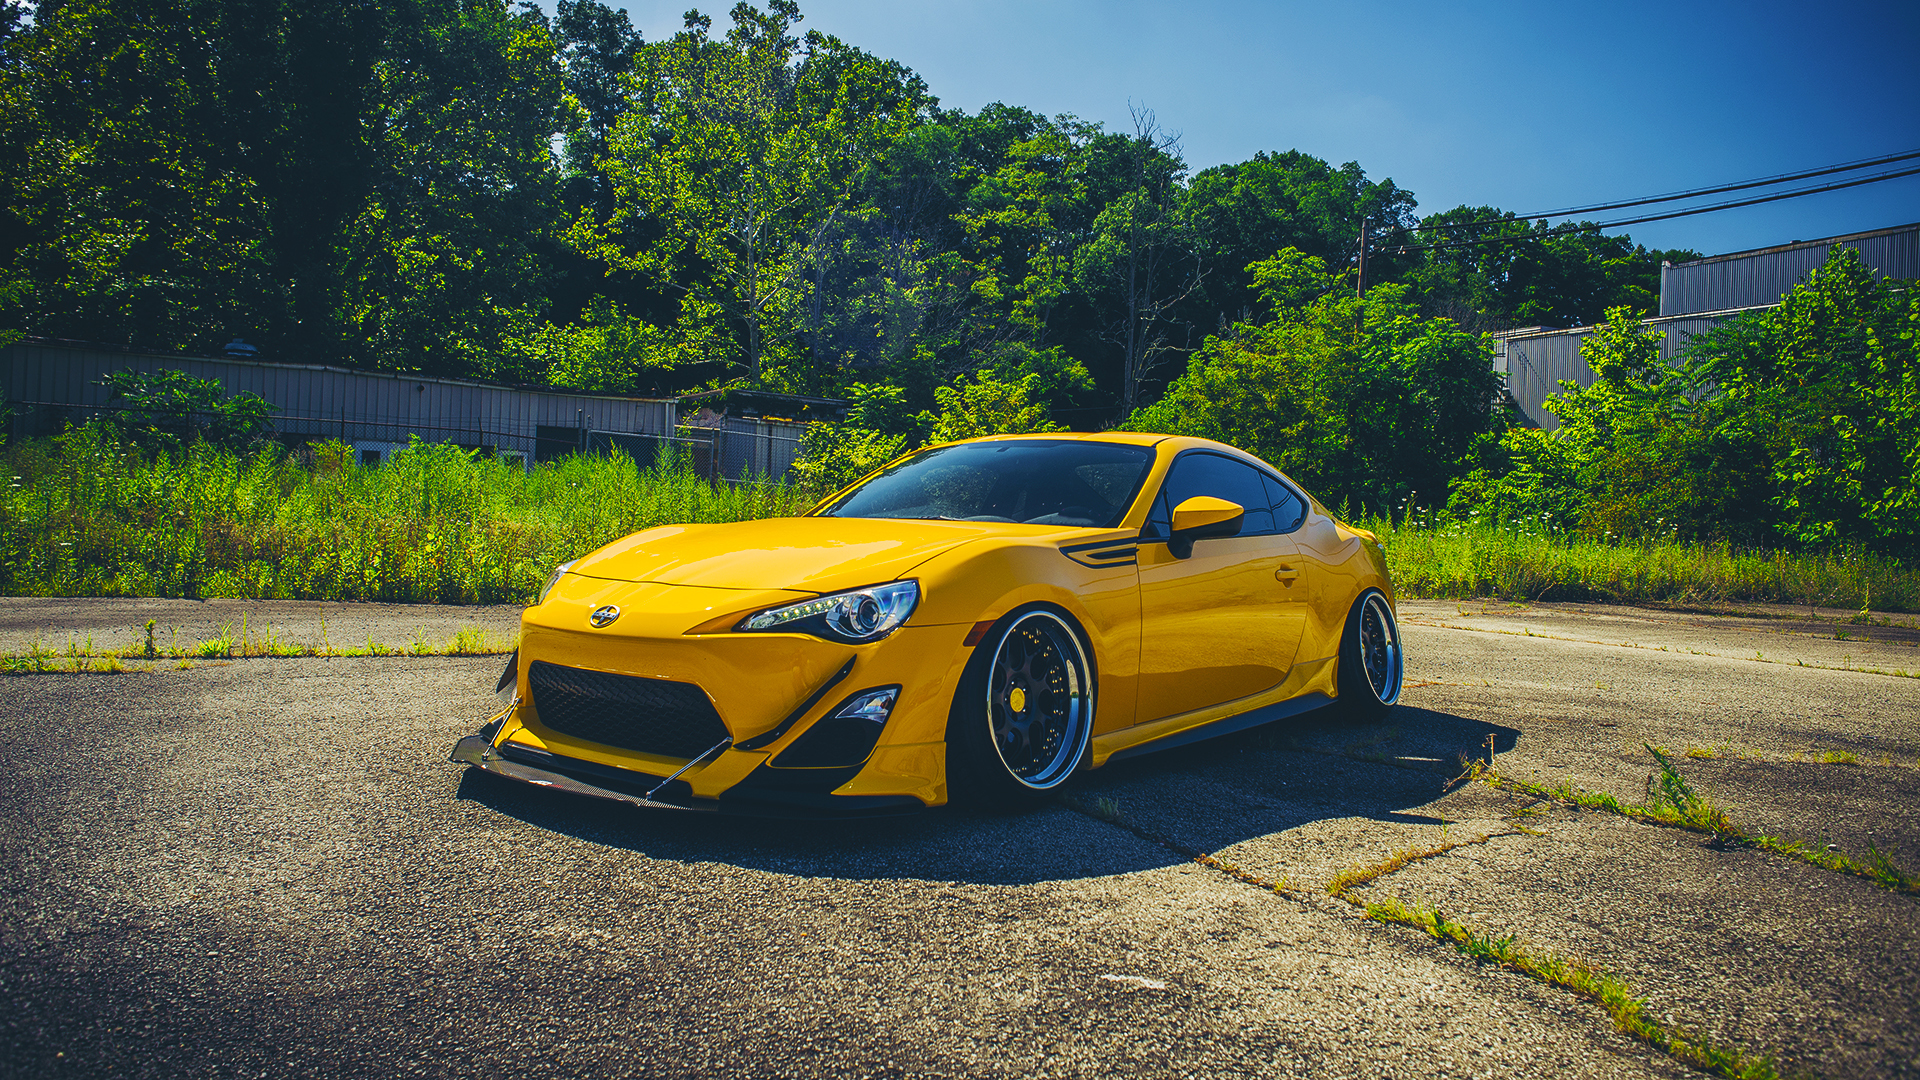 Scion frs stance wallpaper hd car wallpapers id 5667 - Wallpaper hd 4k car ...